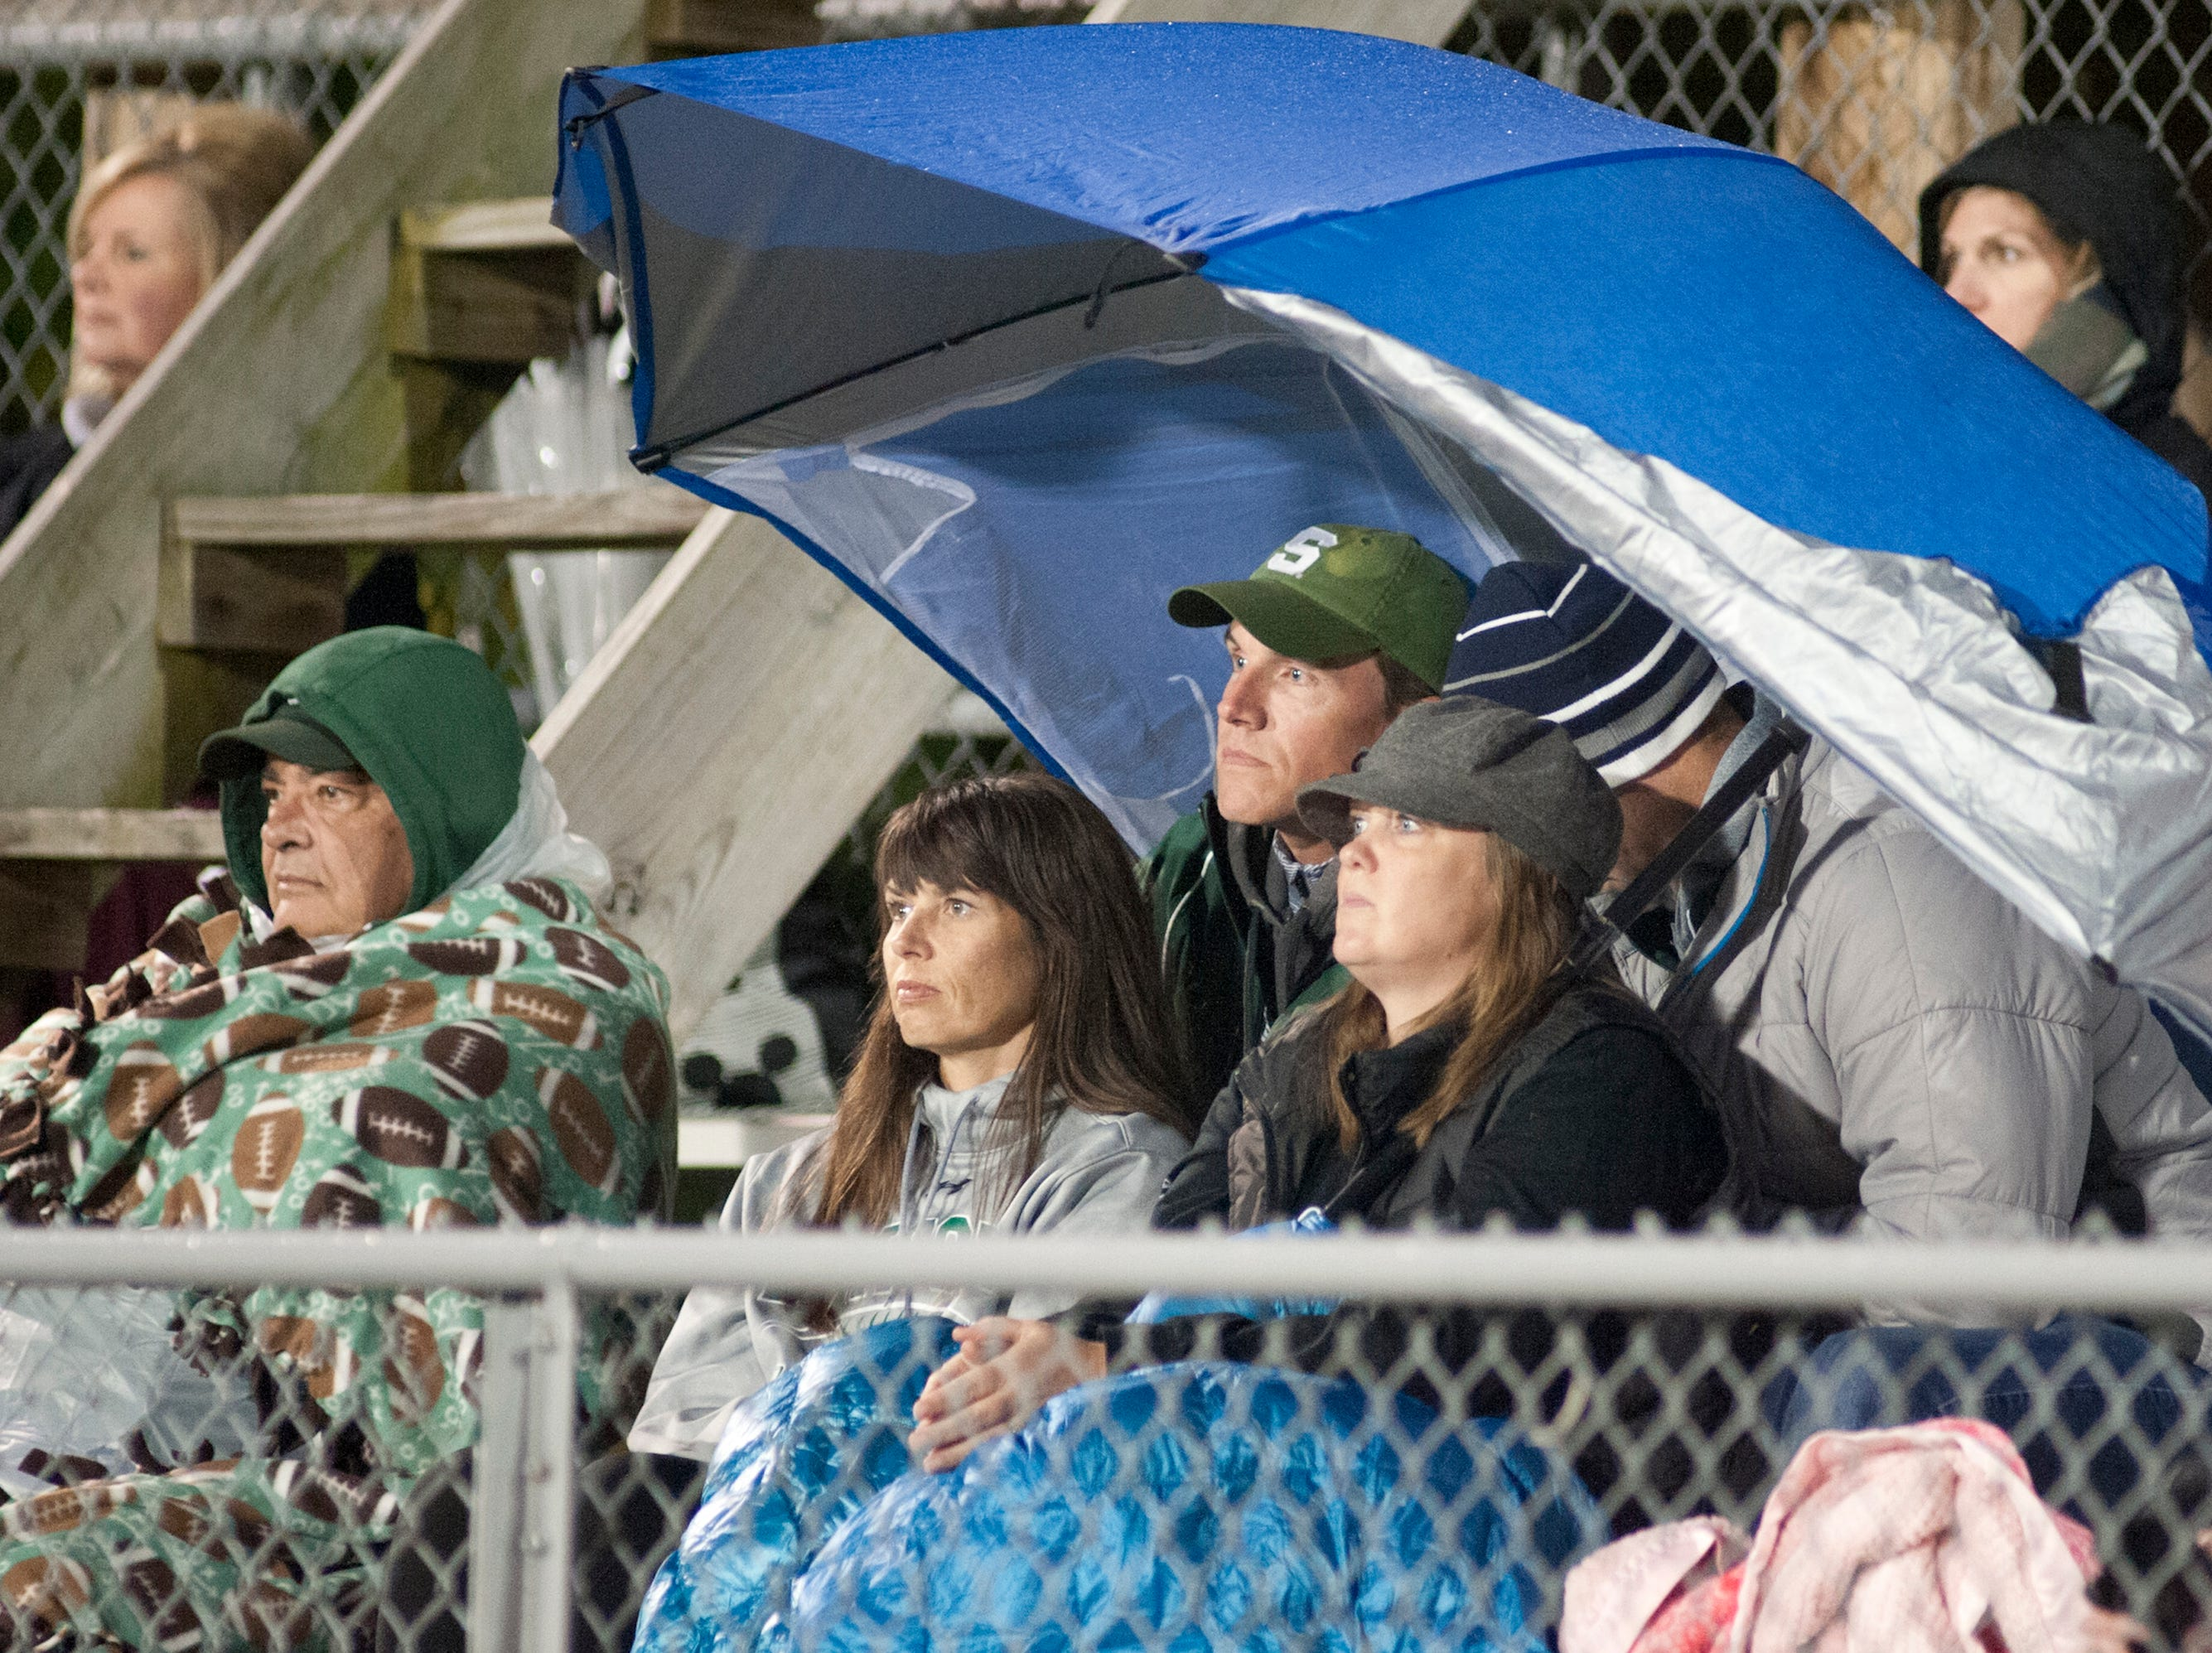 South Oldham fans huddle under blankets and umbrellas to watch their team play. Oct. 12, 2018